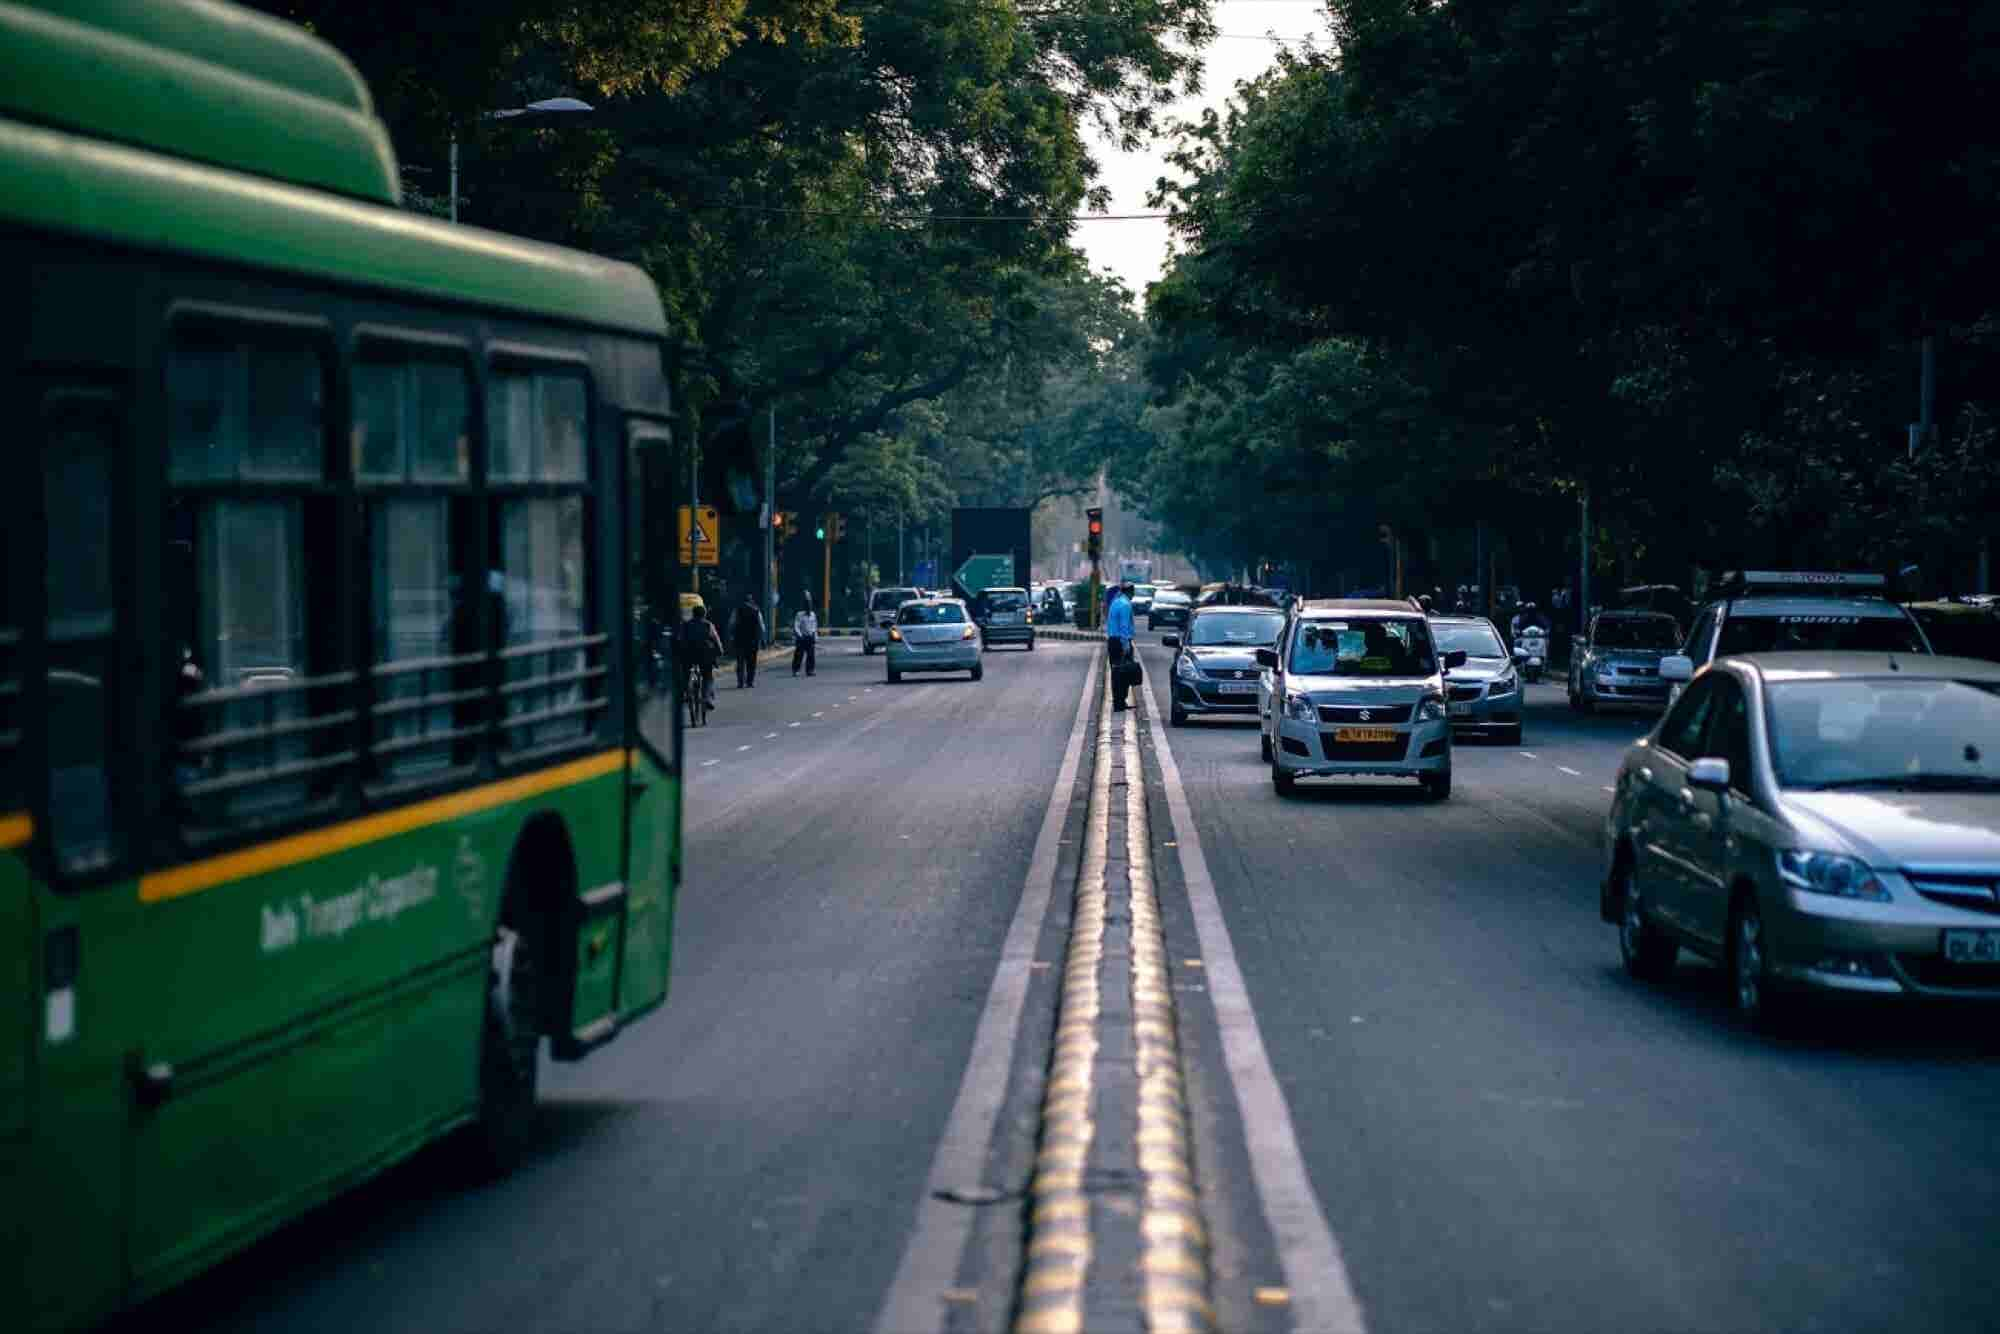 Can Car Sharing Curb Traffic Congestion And Pollution?